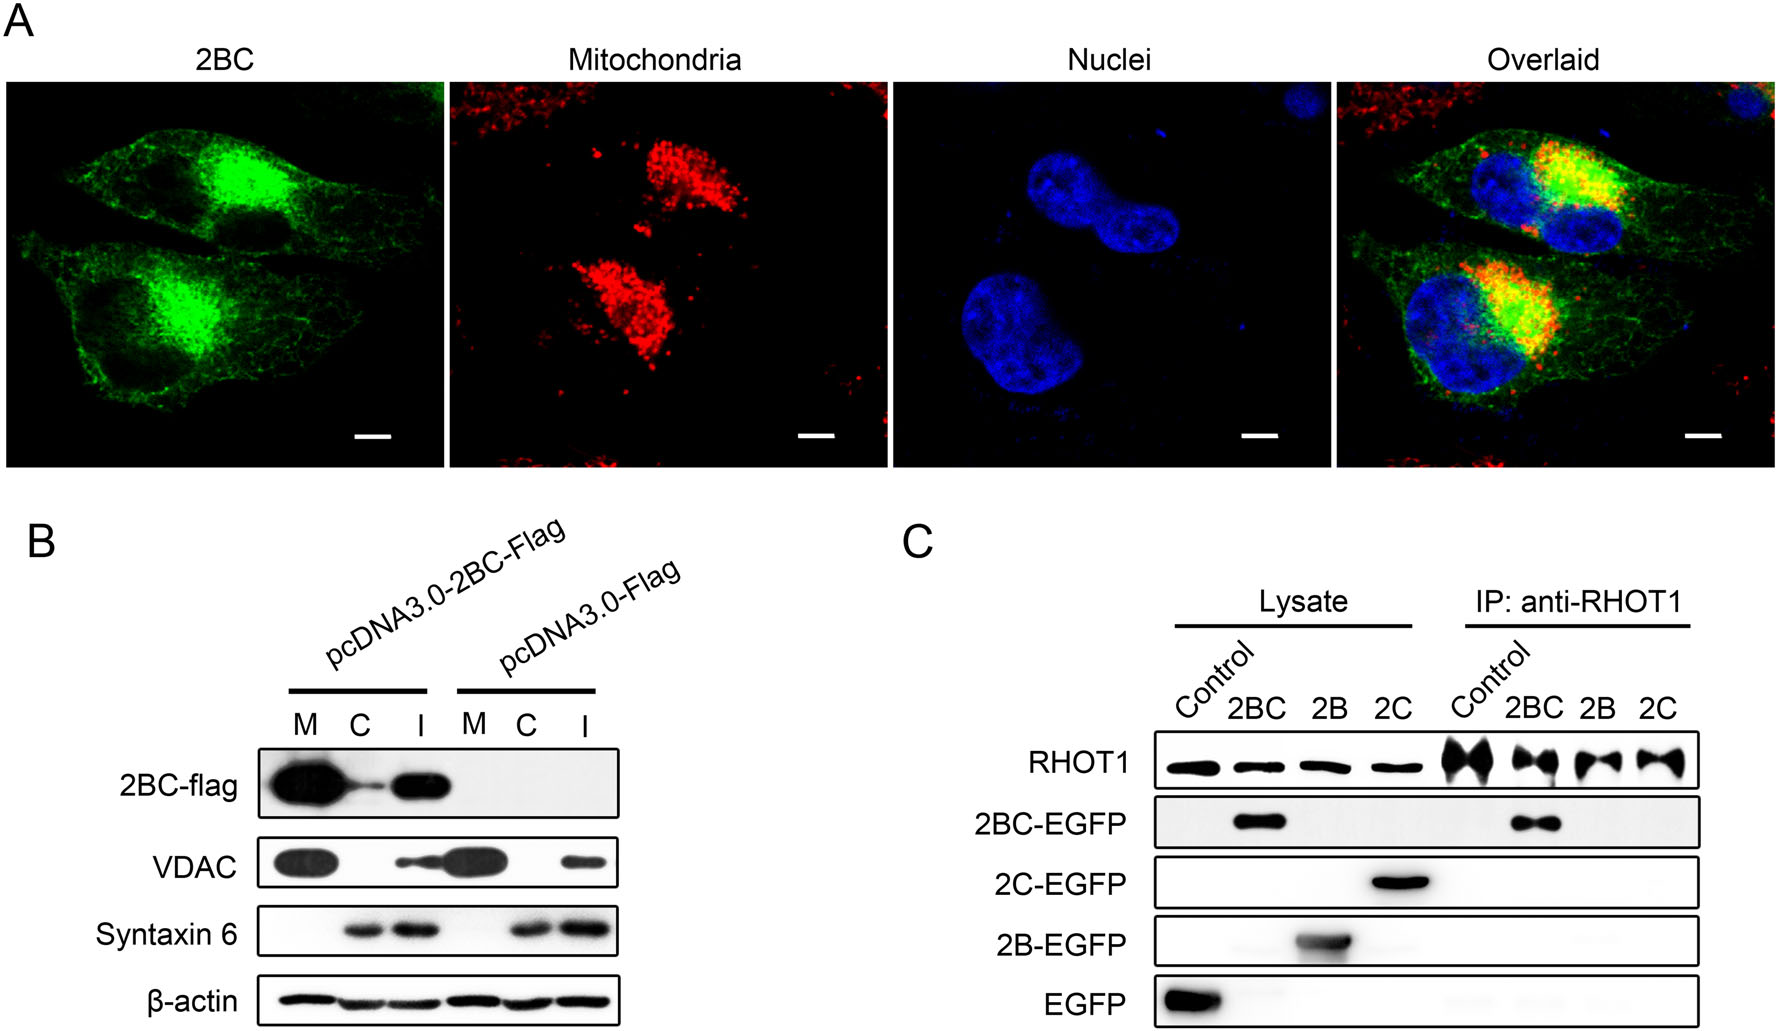 Mitochondria Redistribution in Enterovirus A71 Infected Cells and Its Effect on Virus Replication